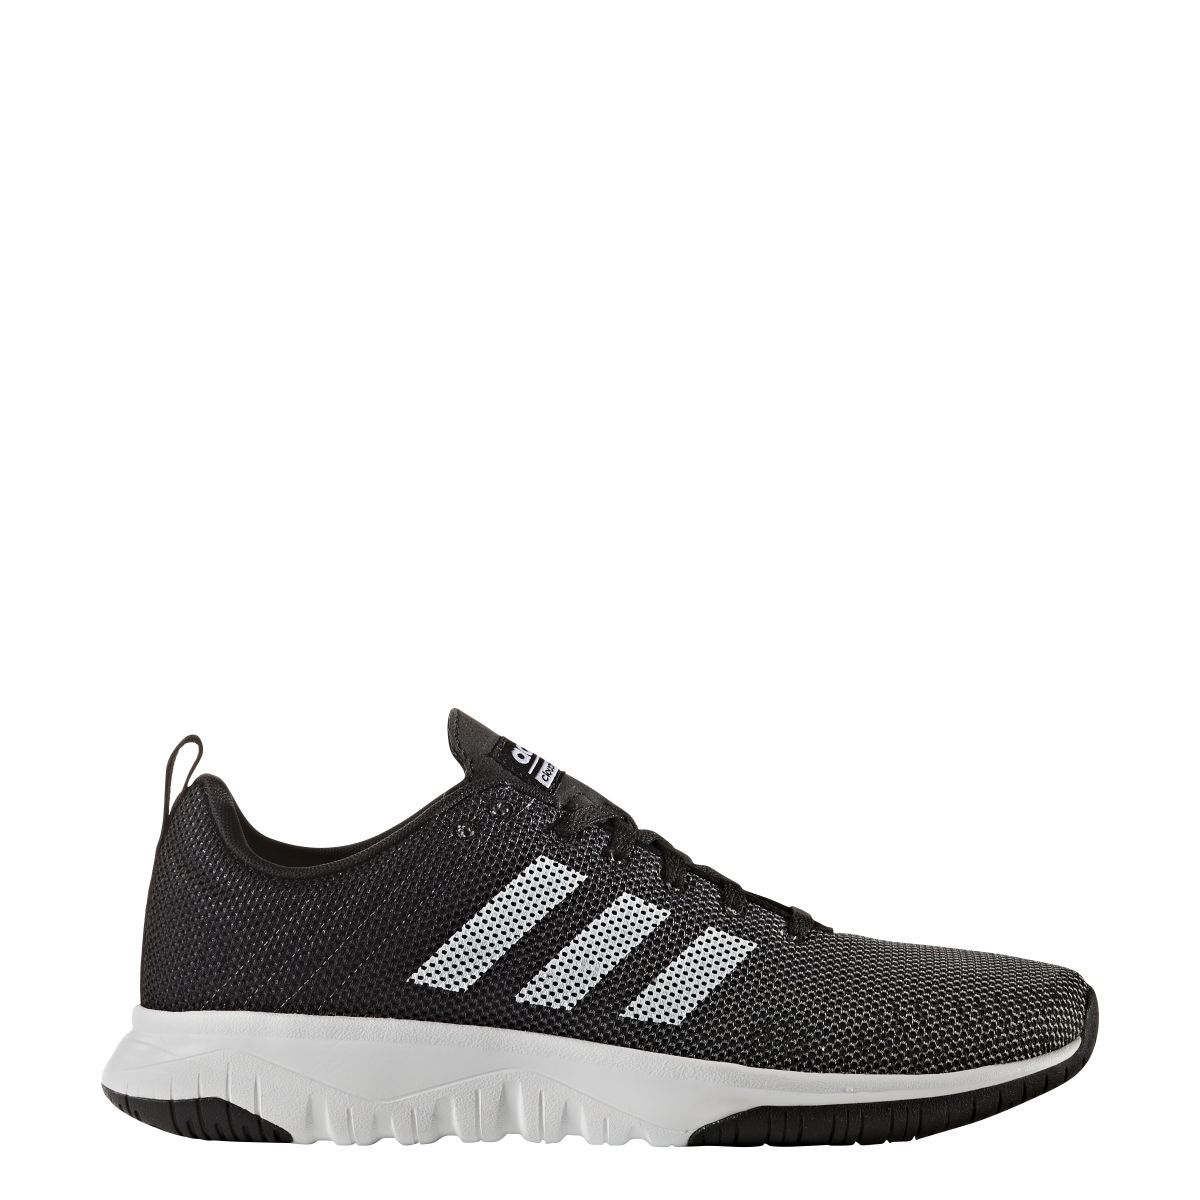 check out d05a5 86590 Mens Adidas Cloudfoam SuperFlex Black Athletic Sport Running Shoe AW4172  9-14